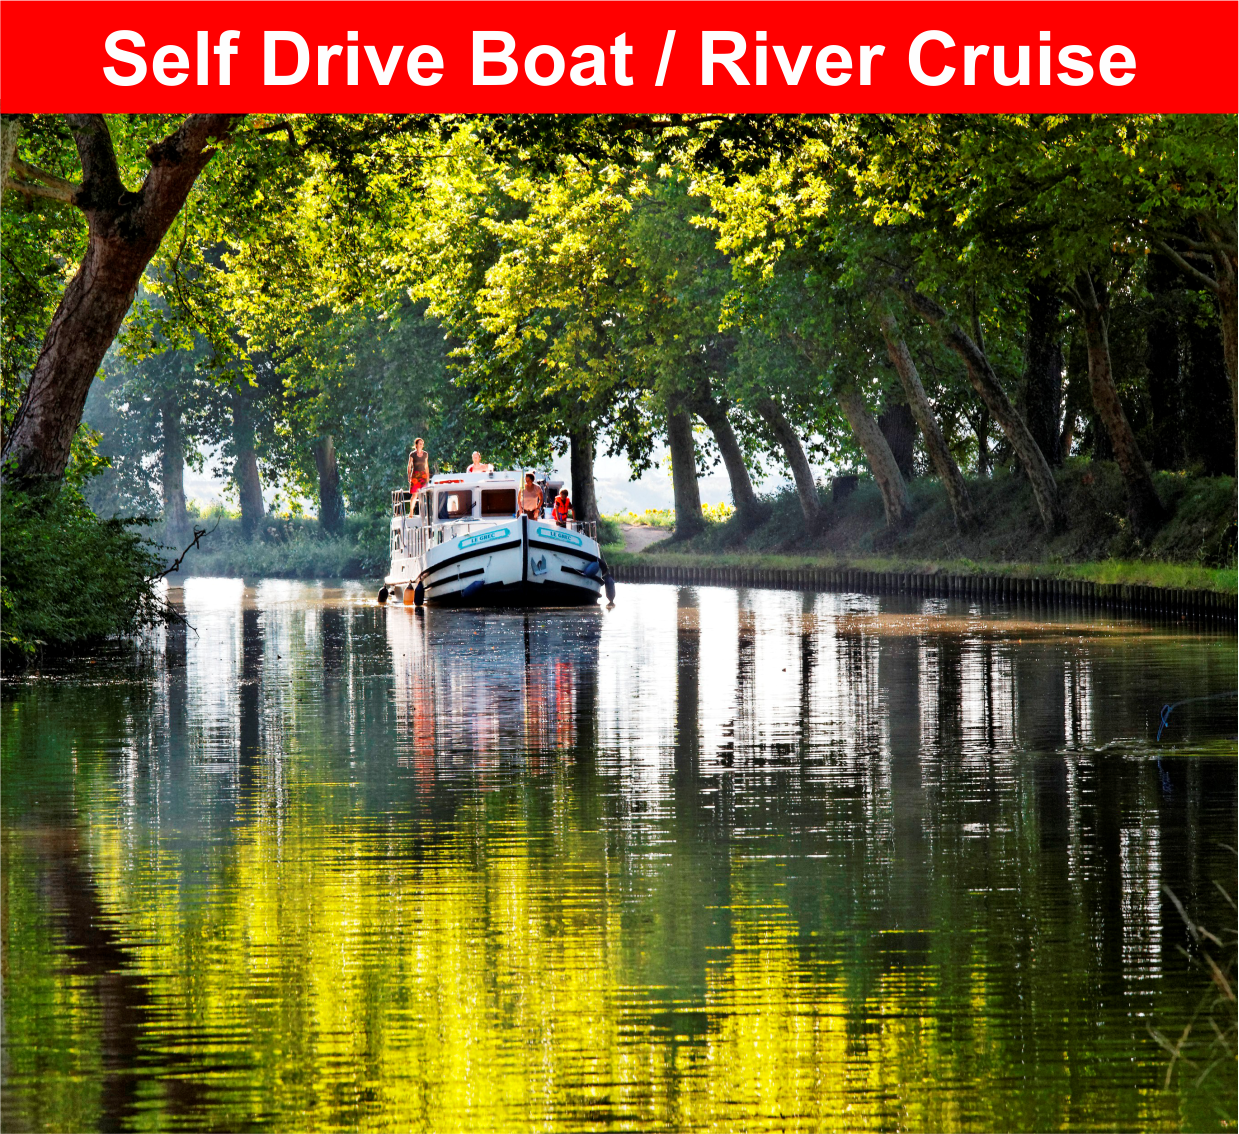 Self Drive Boat / River Cruise